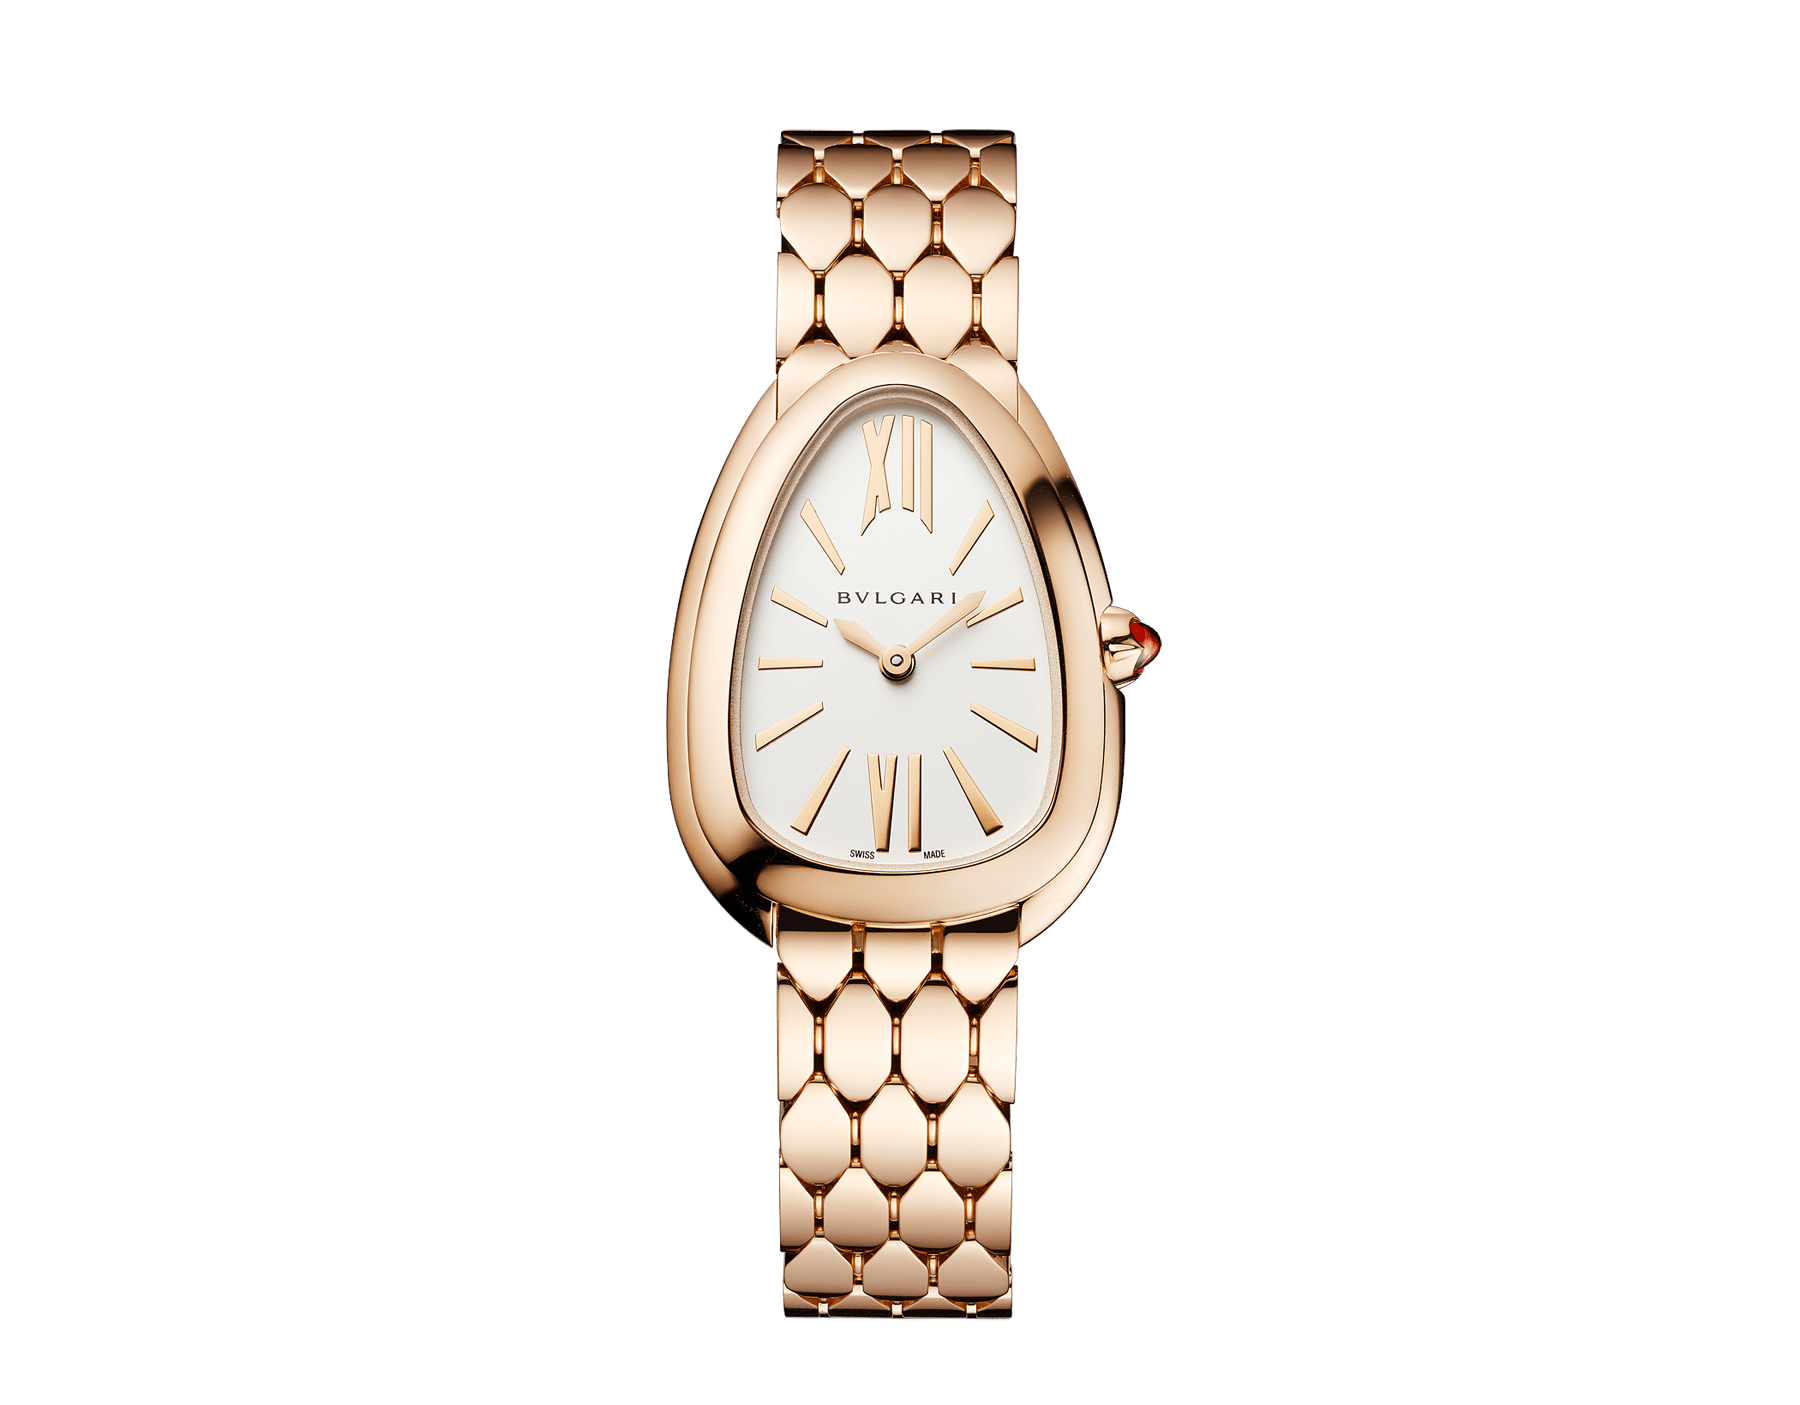 Serpenti Seduttori watch with 18 kt rose gold case, rose gold bracelet and a white silver opaline dial. 103145 image 1